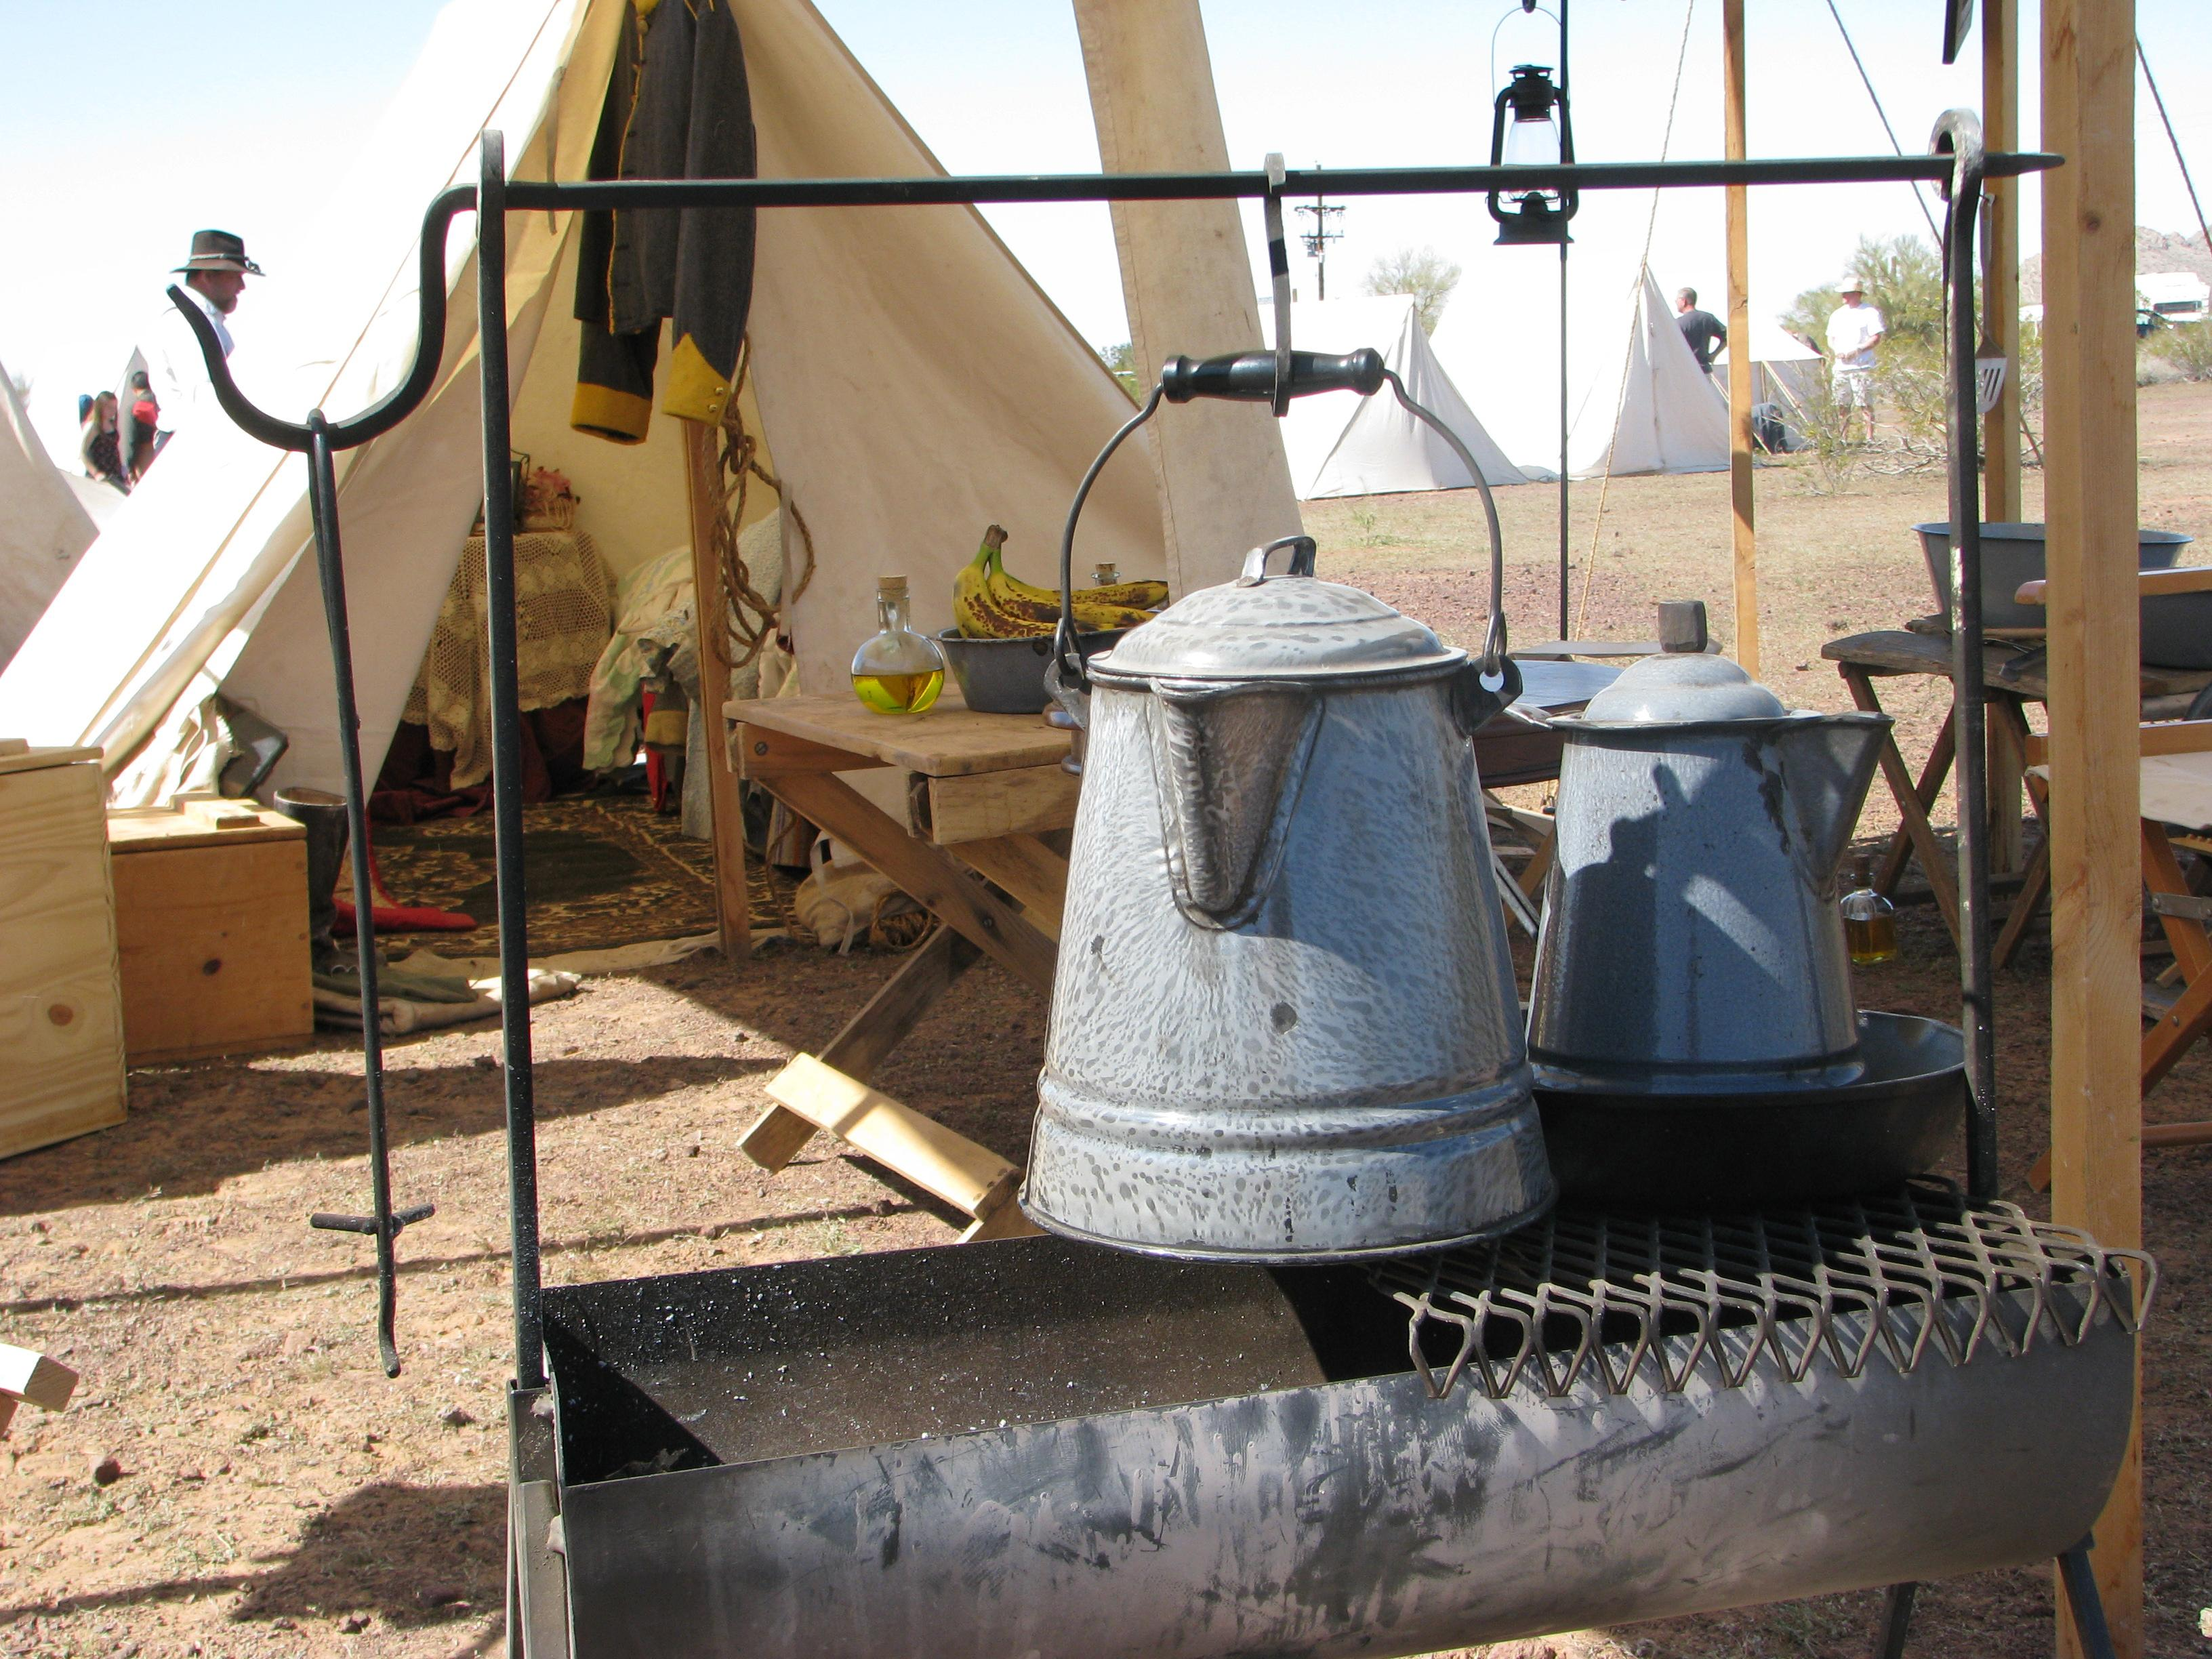 Coffee pots used at Picacho re-enactment